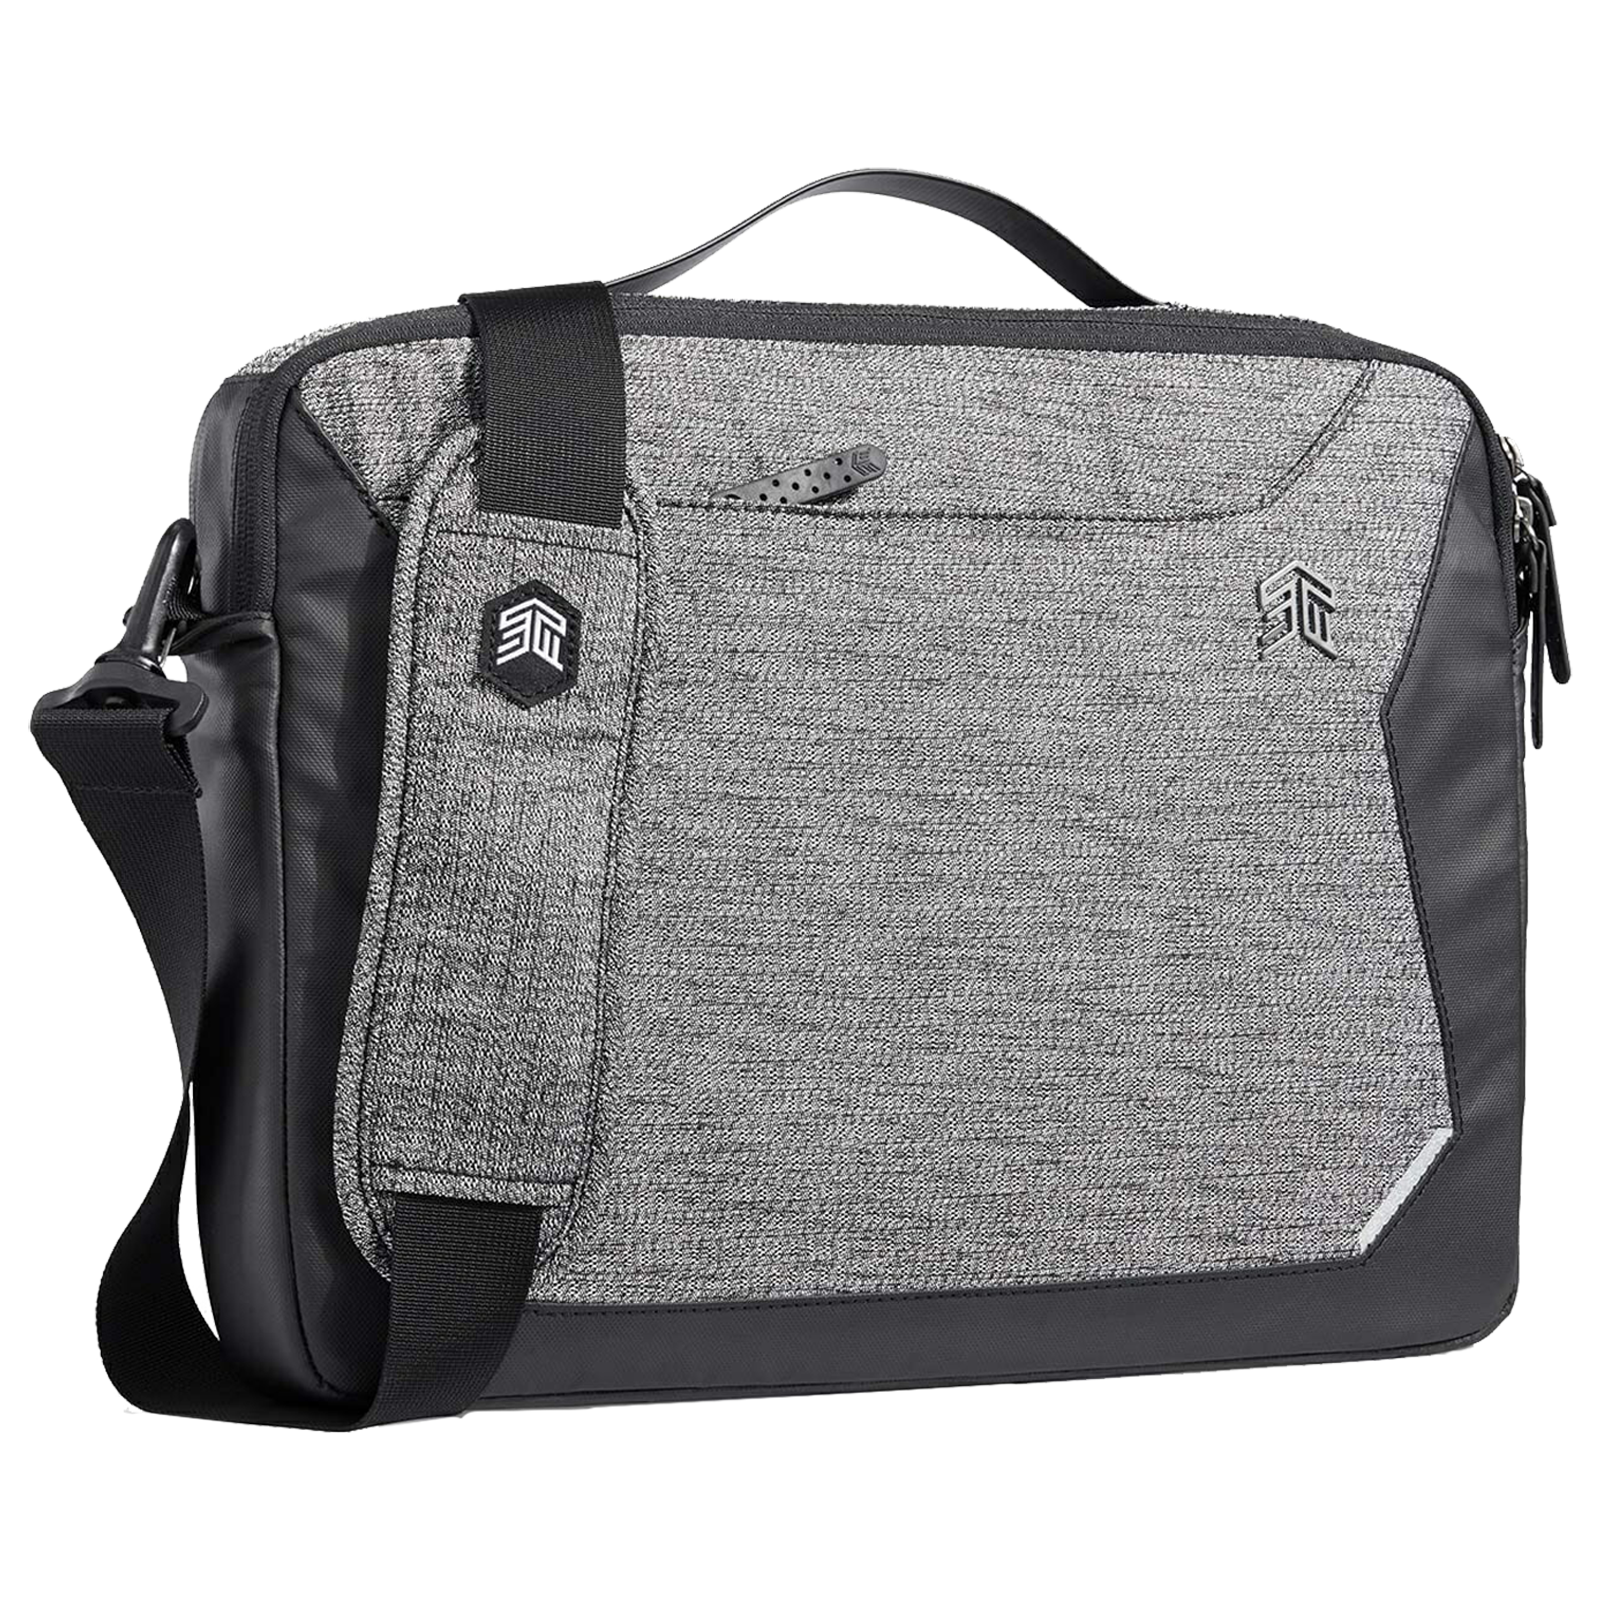 STM Myth Brief 8 Litres Polyester Carry Case for 15 Inch Laptop (Reverse Coil Zippers, STM-117-185P-01, Granite Black)_1